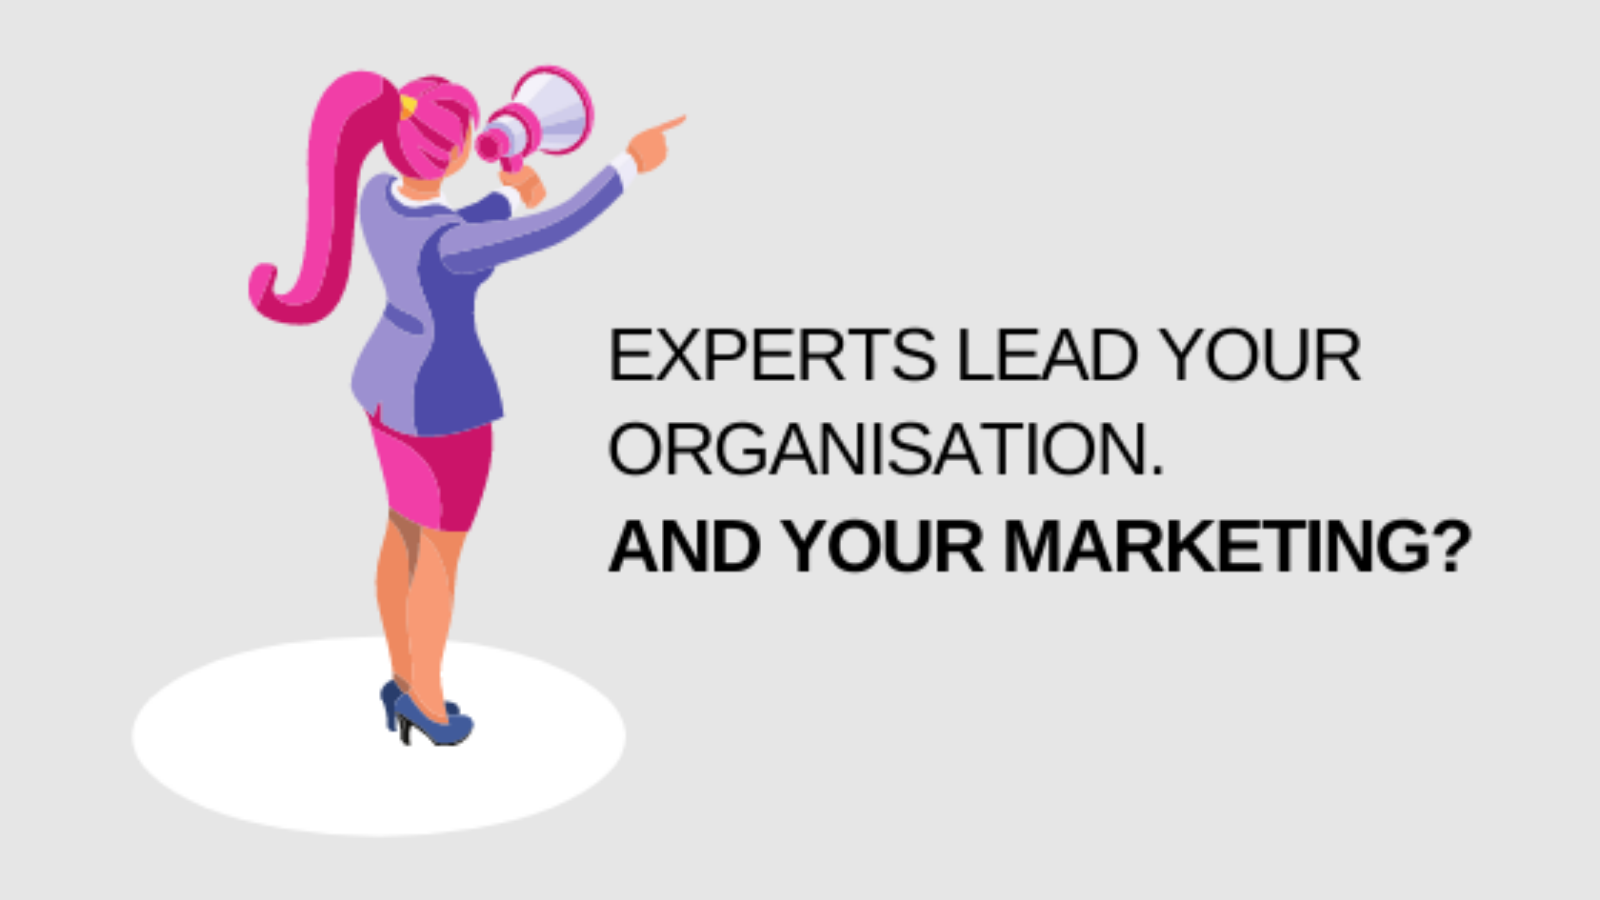 Employees Expertise you're Missing Out on